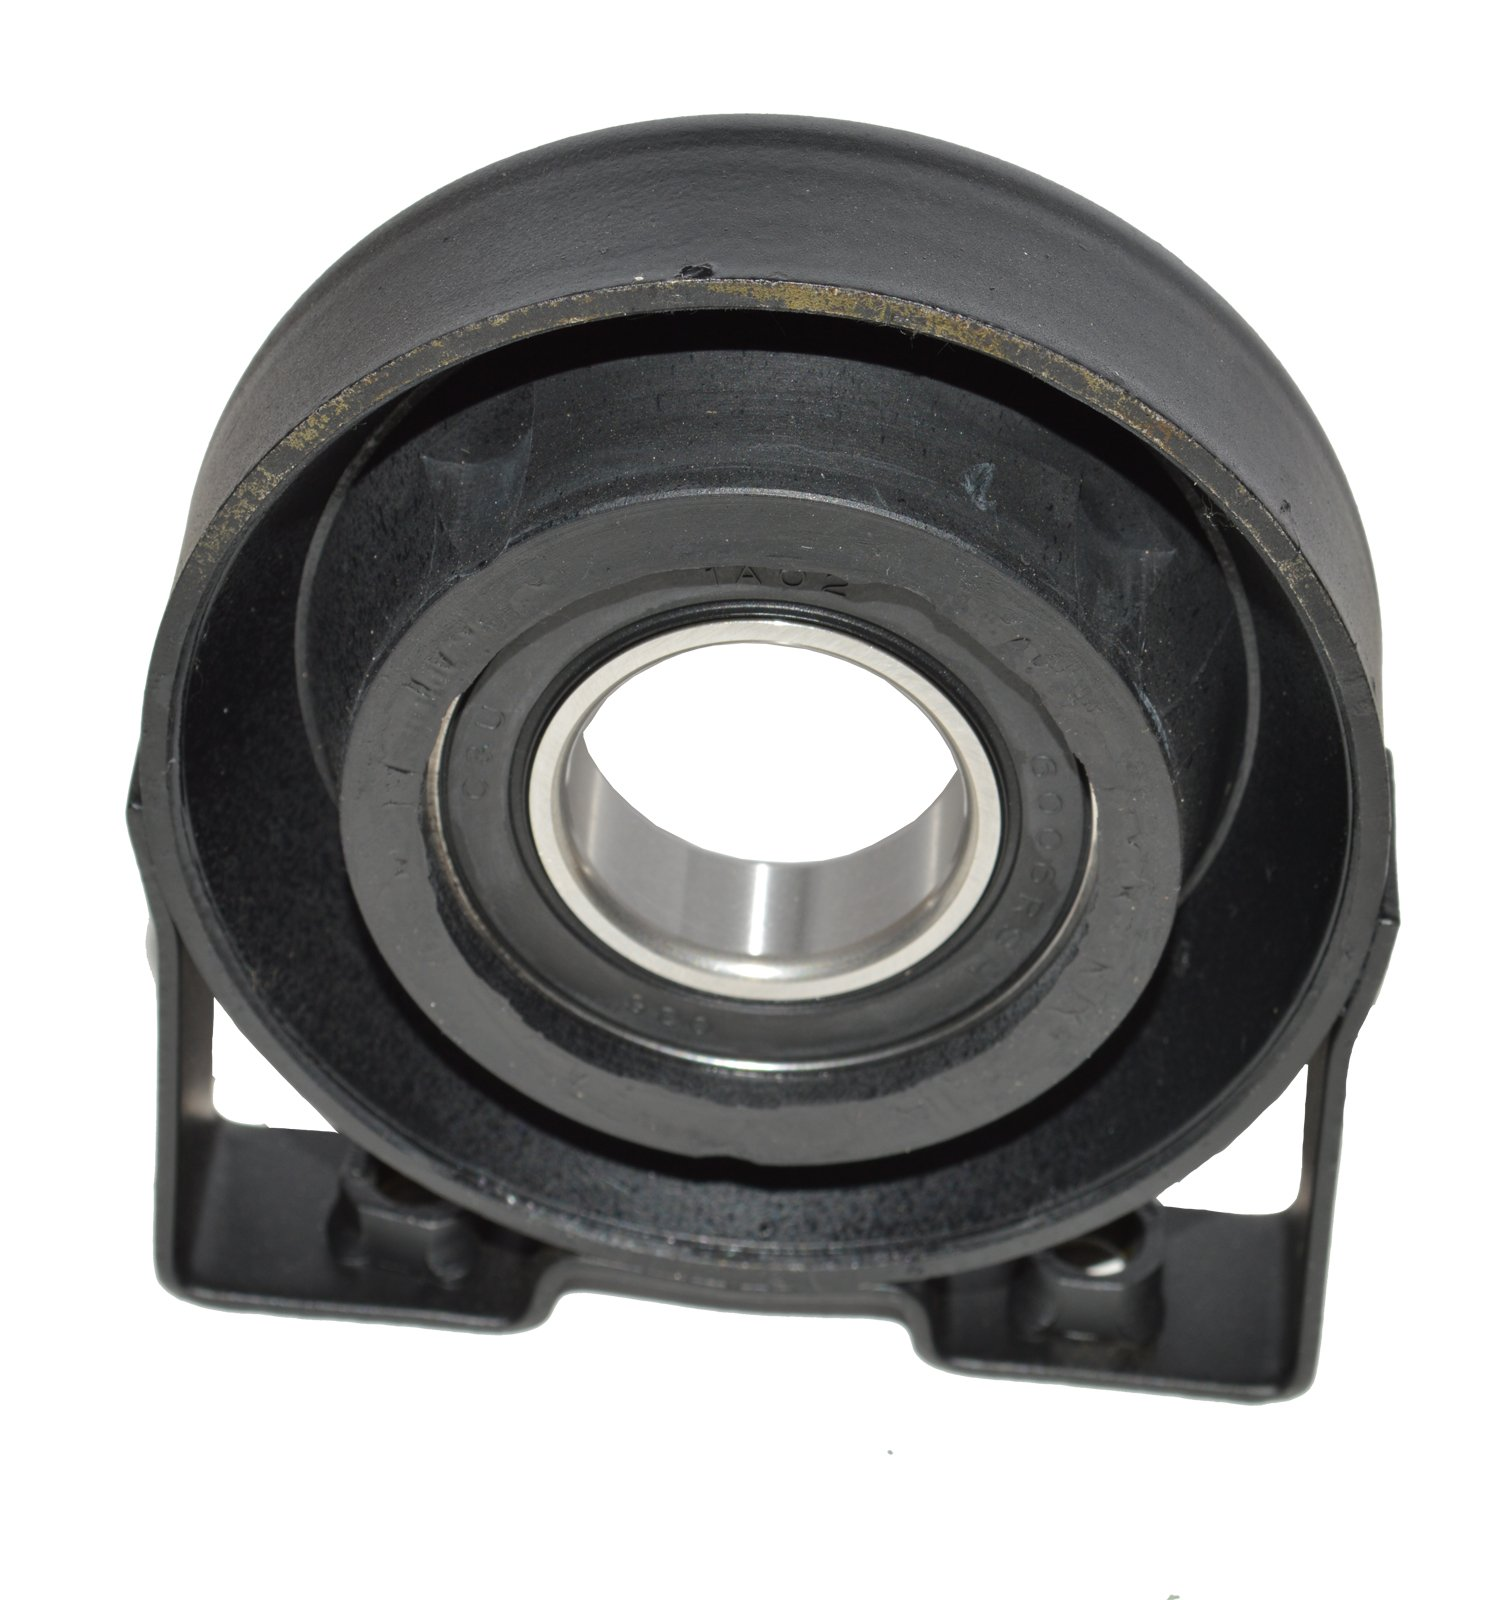 FOR VOLVO AWD S60 S70 V70 XC70 Driveshaft Center Support Bearing